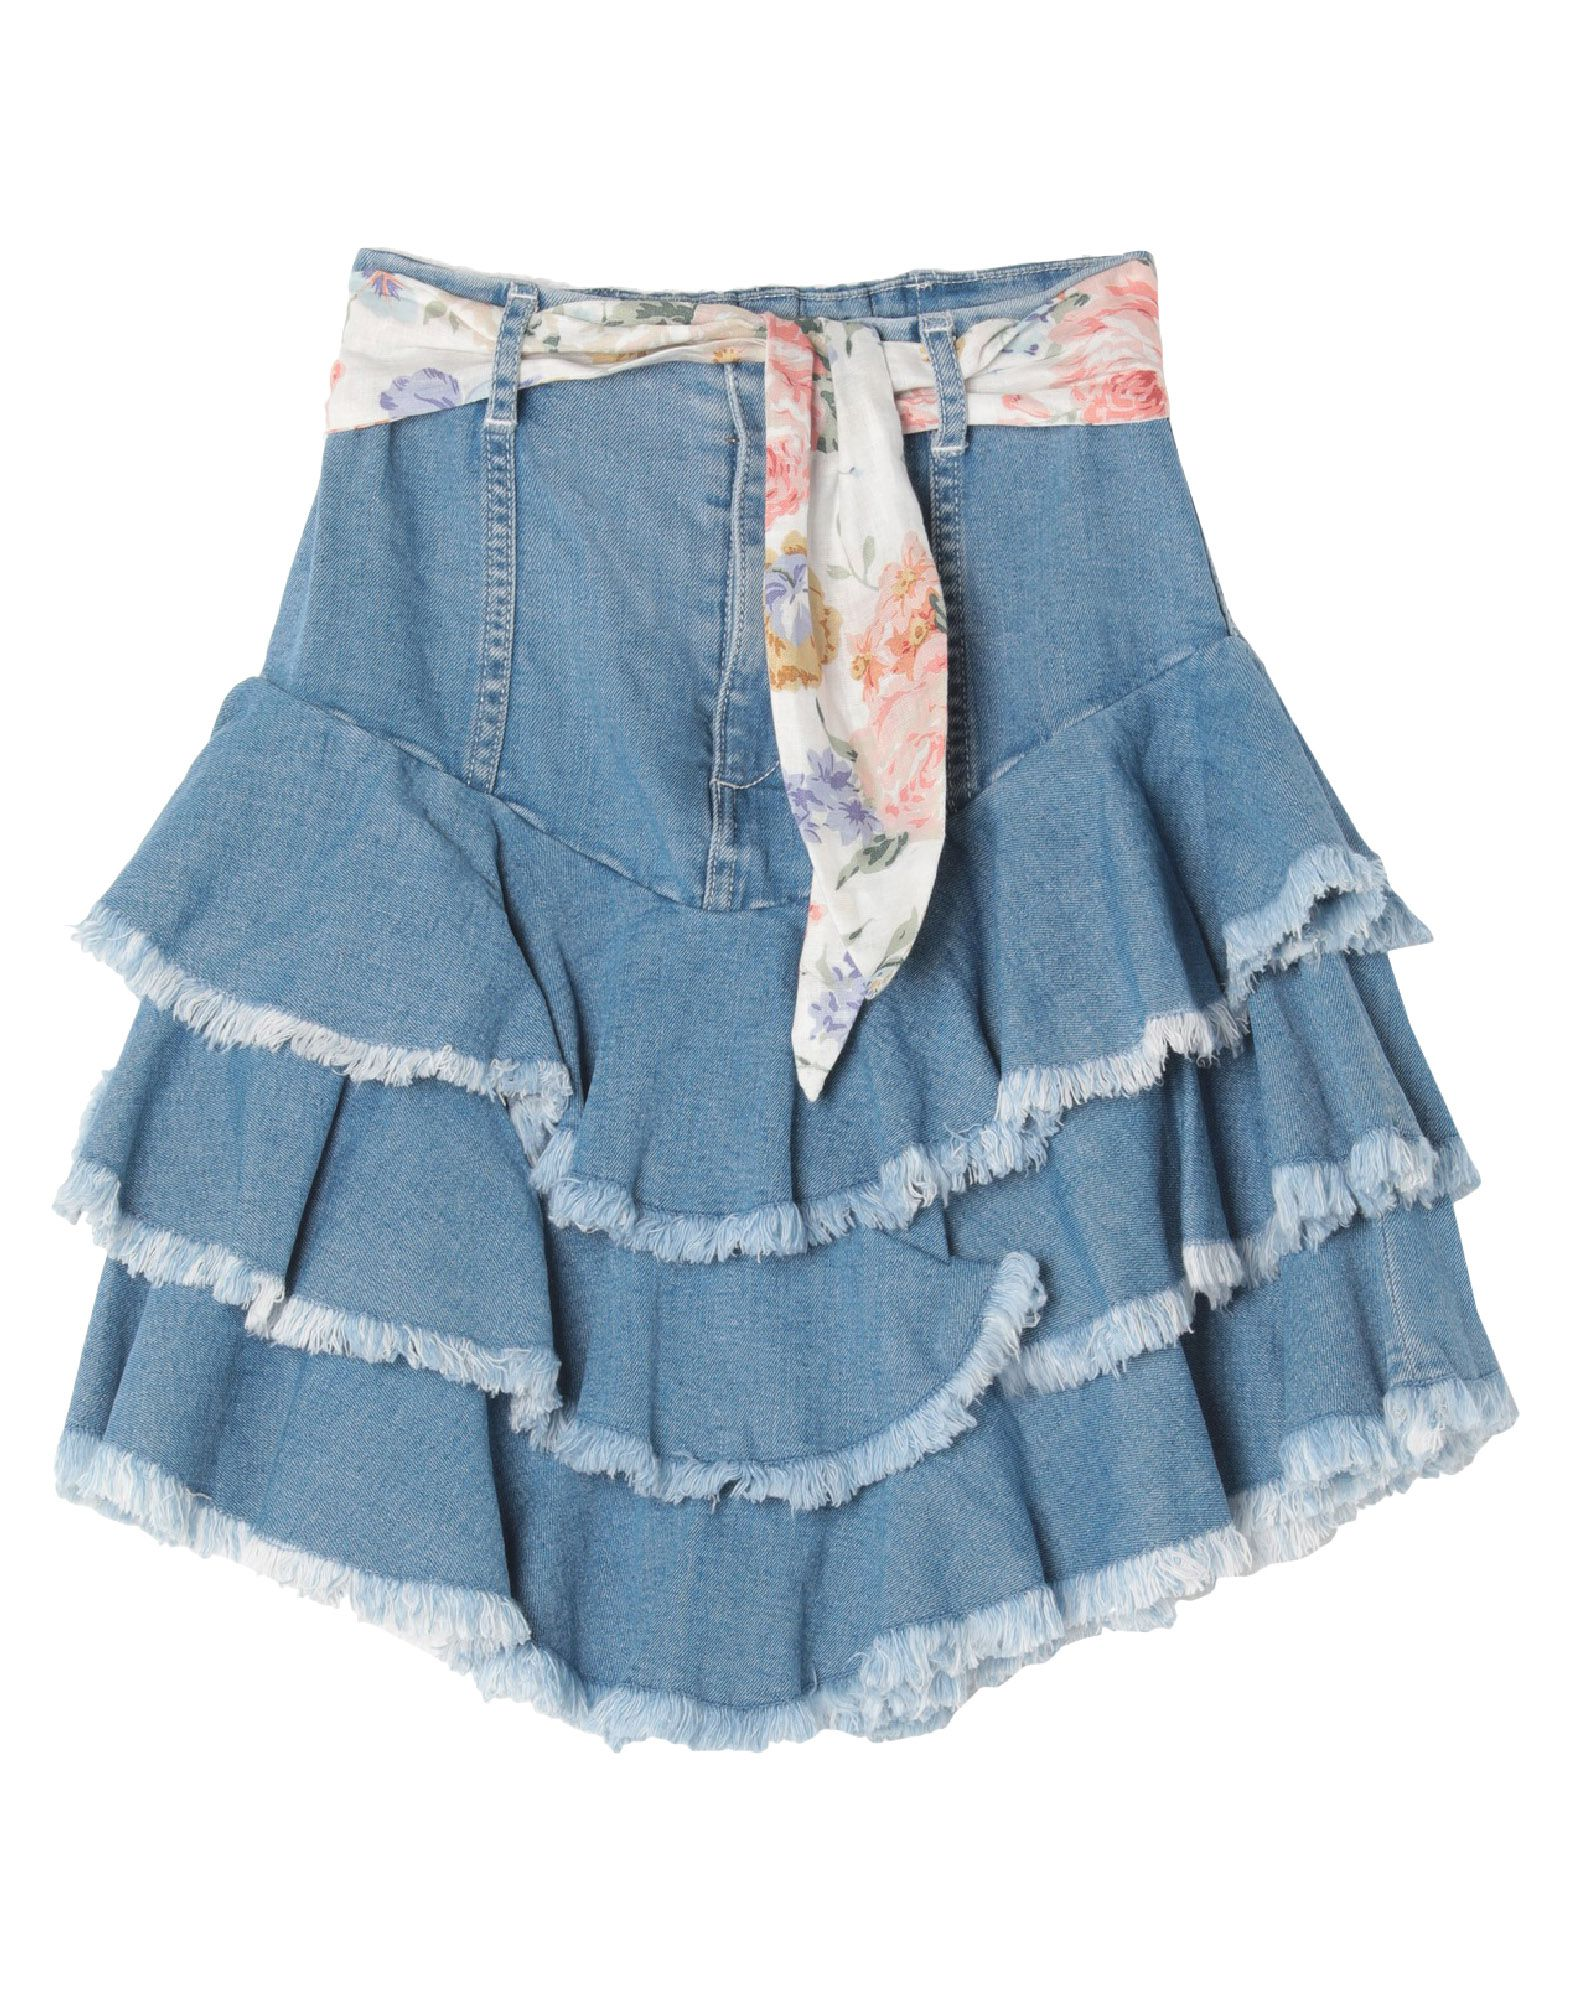 ZIMMERMANN Denim skirts. denim, belt, ruffles, solid color, medium wash, front closure, zipper closure, no pockets, stretch. 98% Cotton, 2% Elastane, Linen